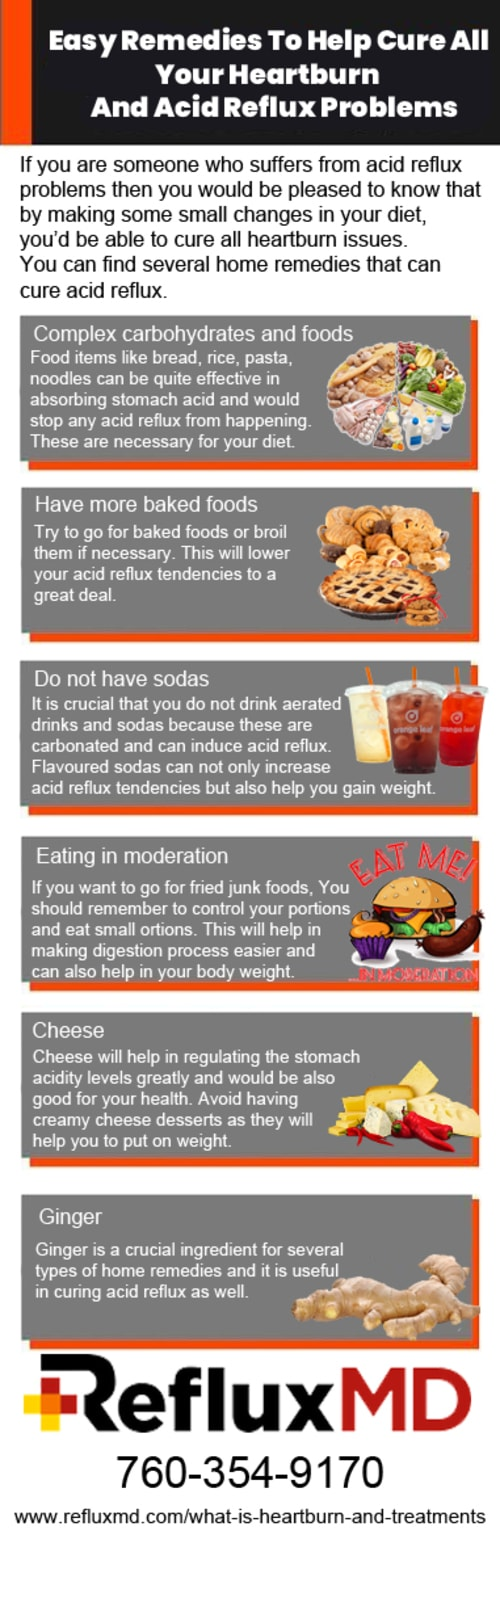 Easy Remedies To Help Cure All Your Heartburn And Acid Reflu... via RefluxMD, Inc.